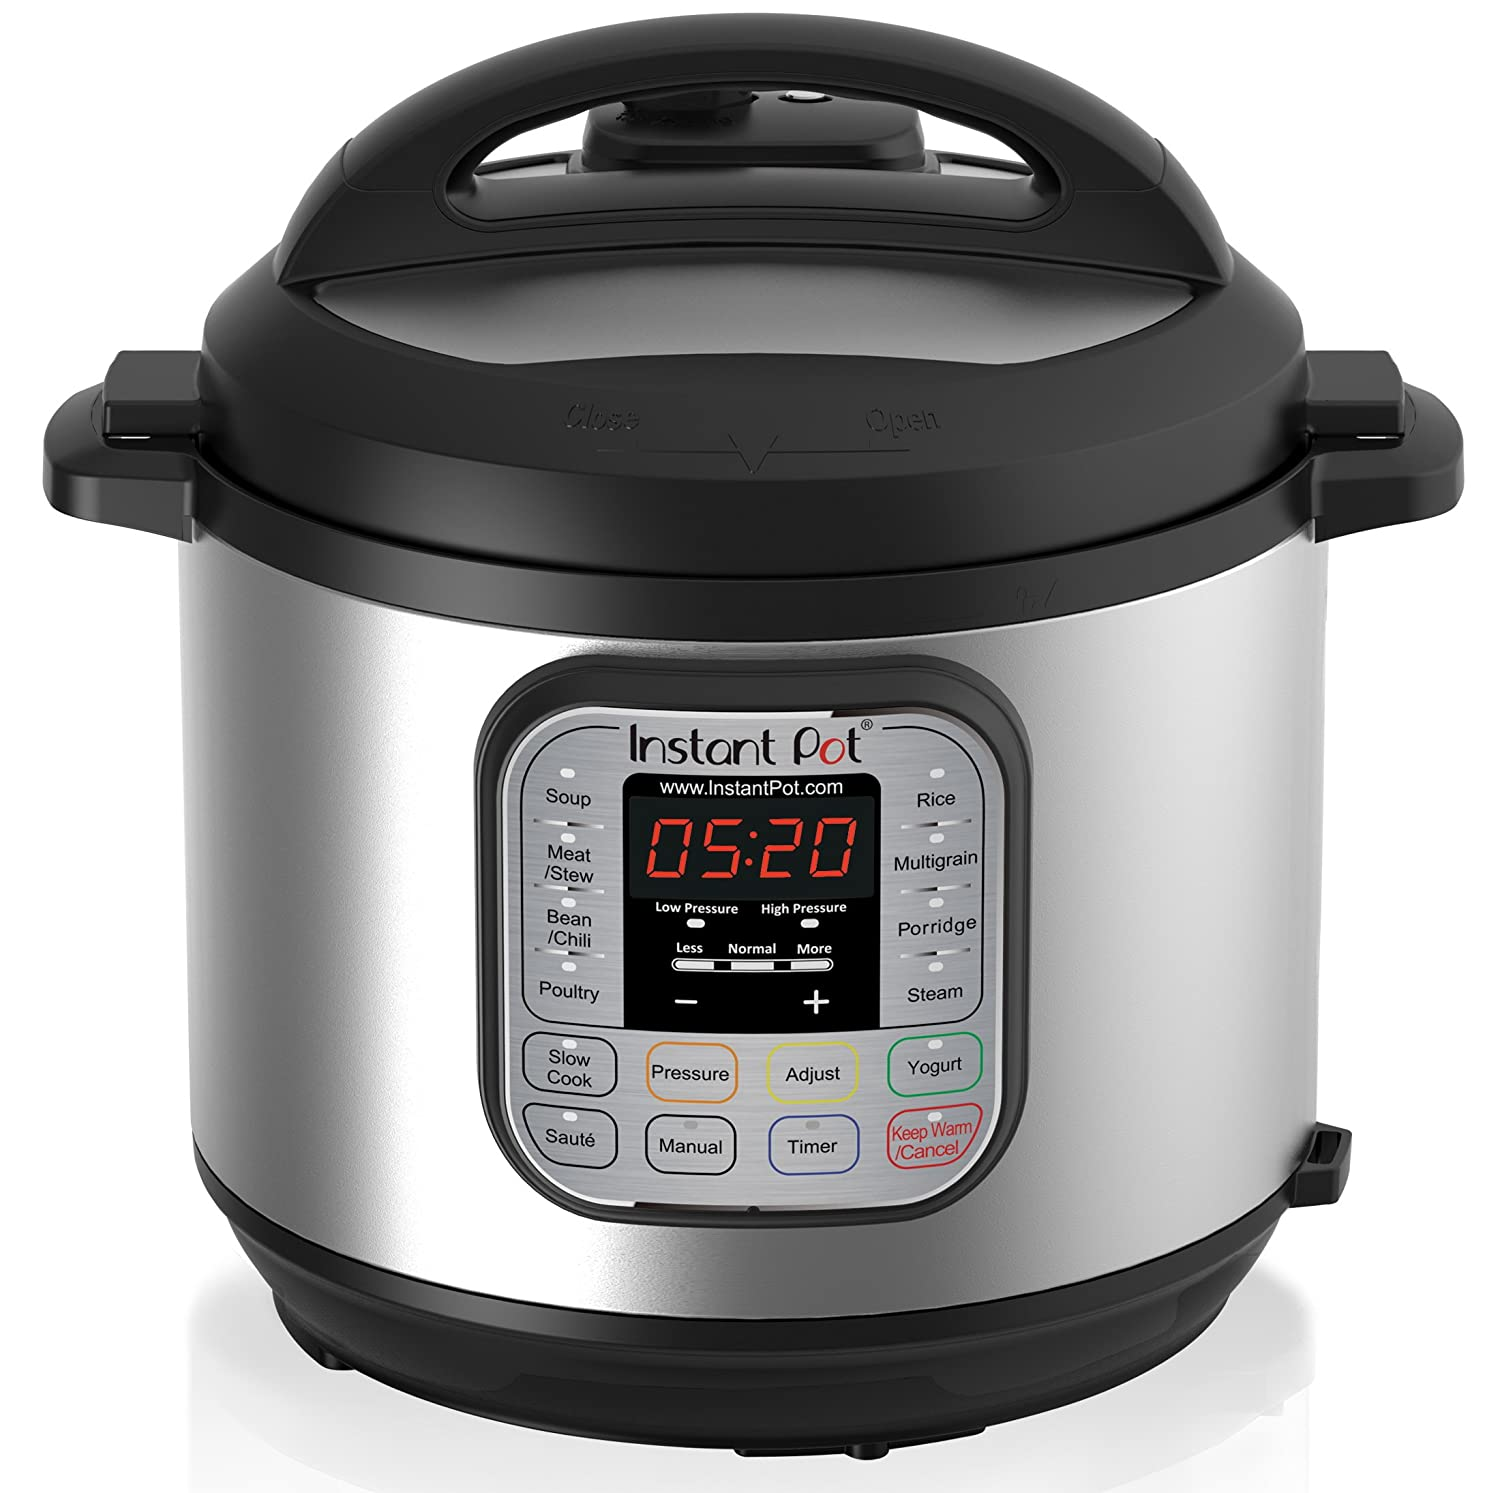 Buying a Perfect Pressure Cooker